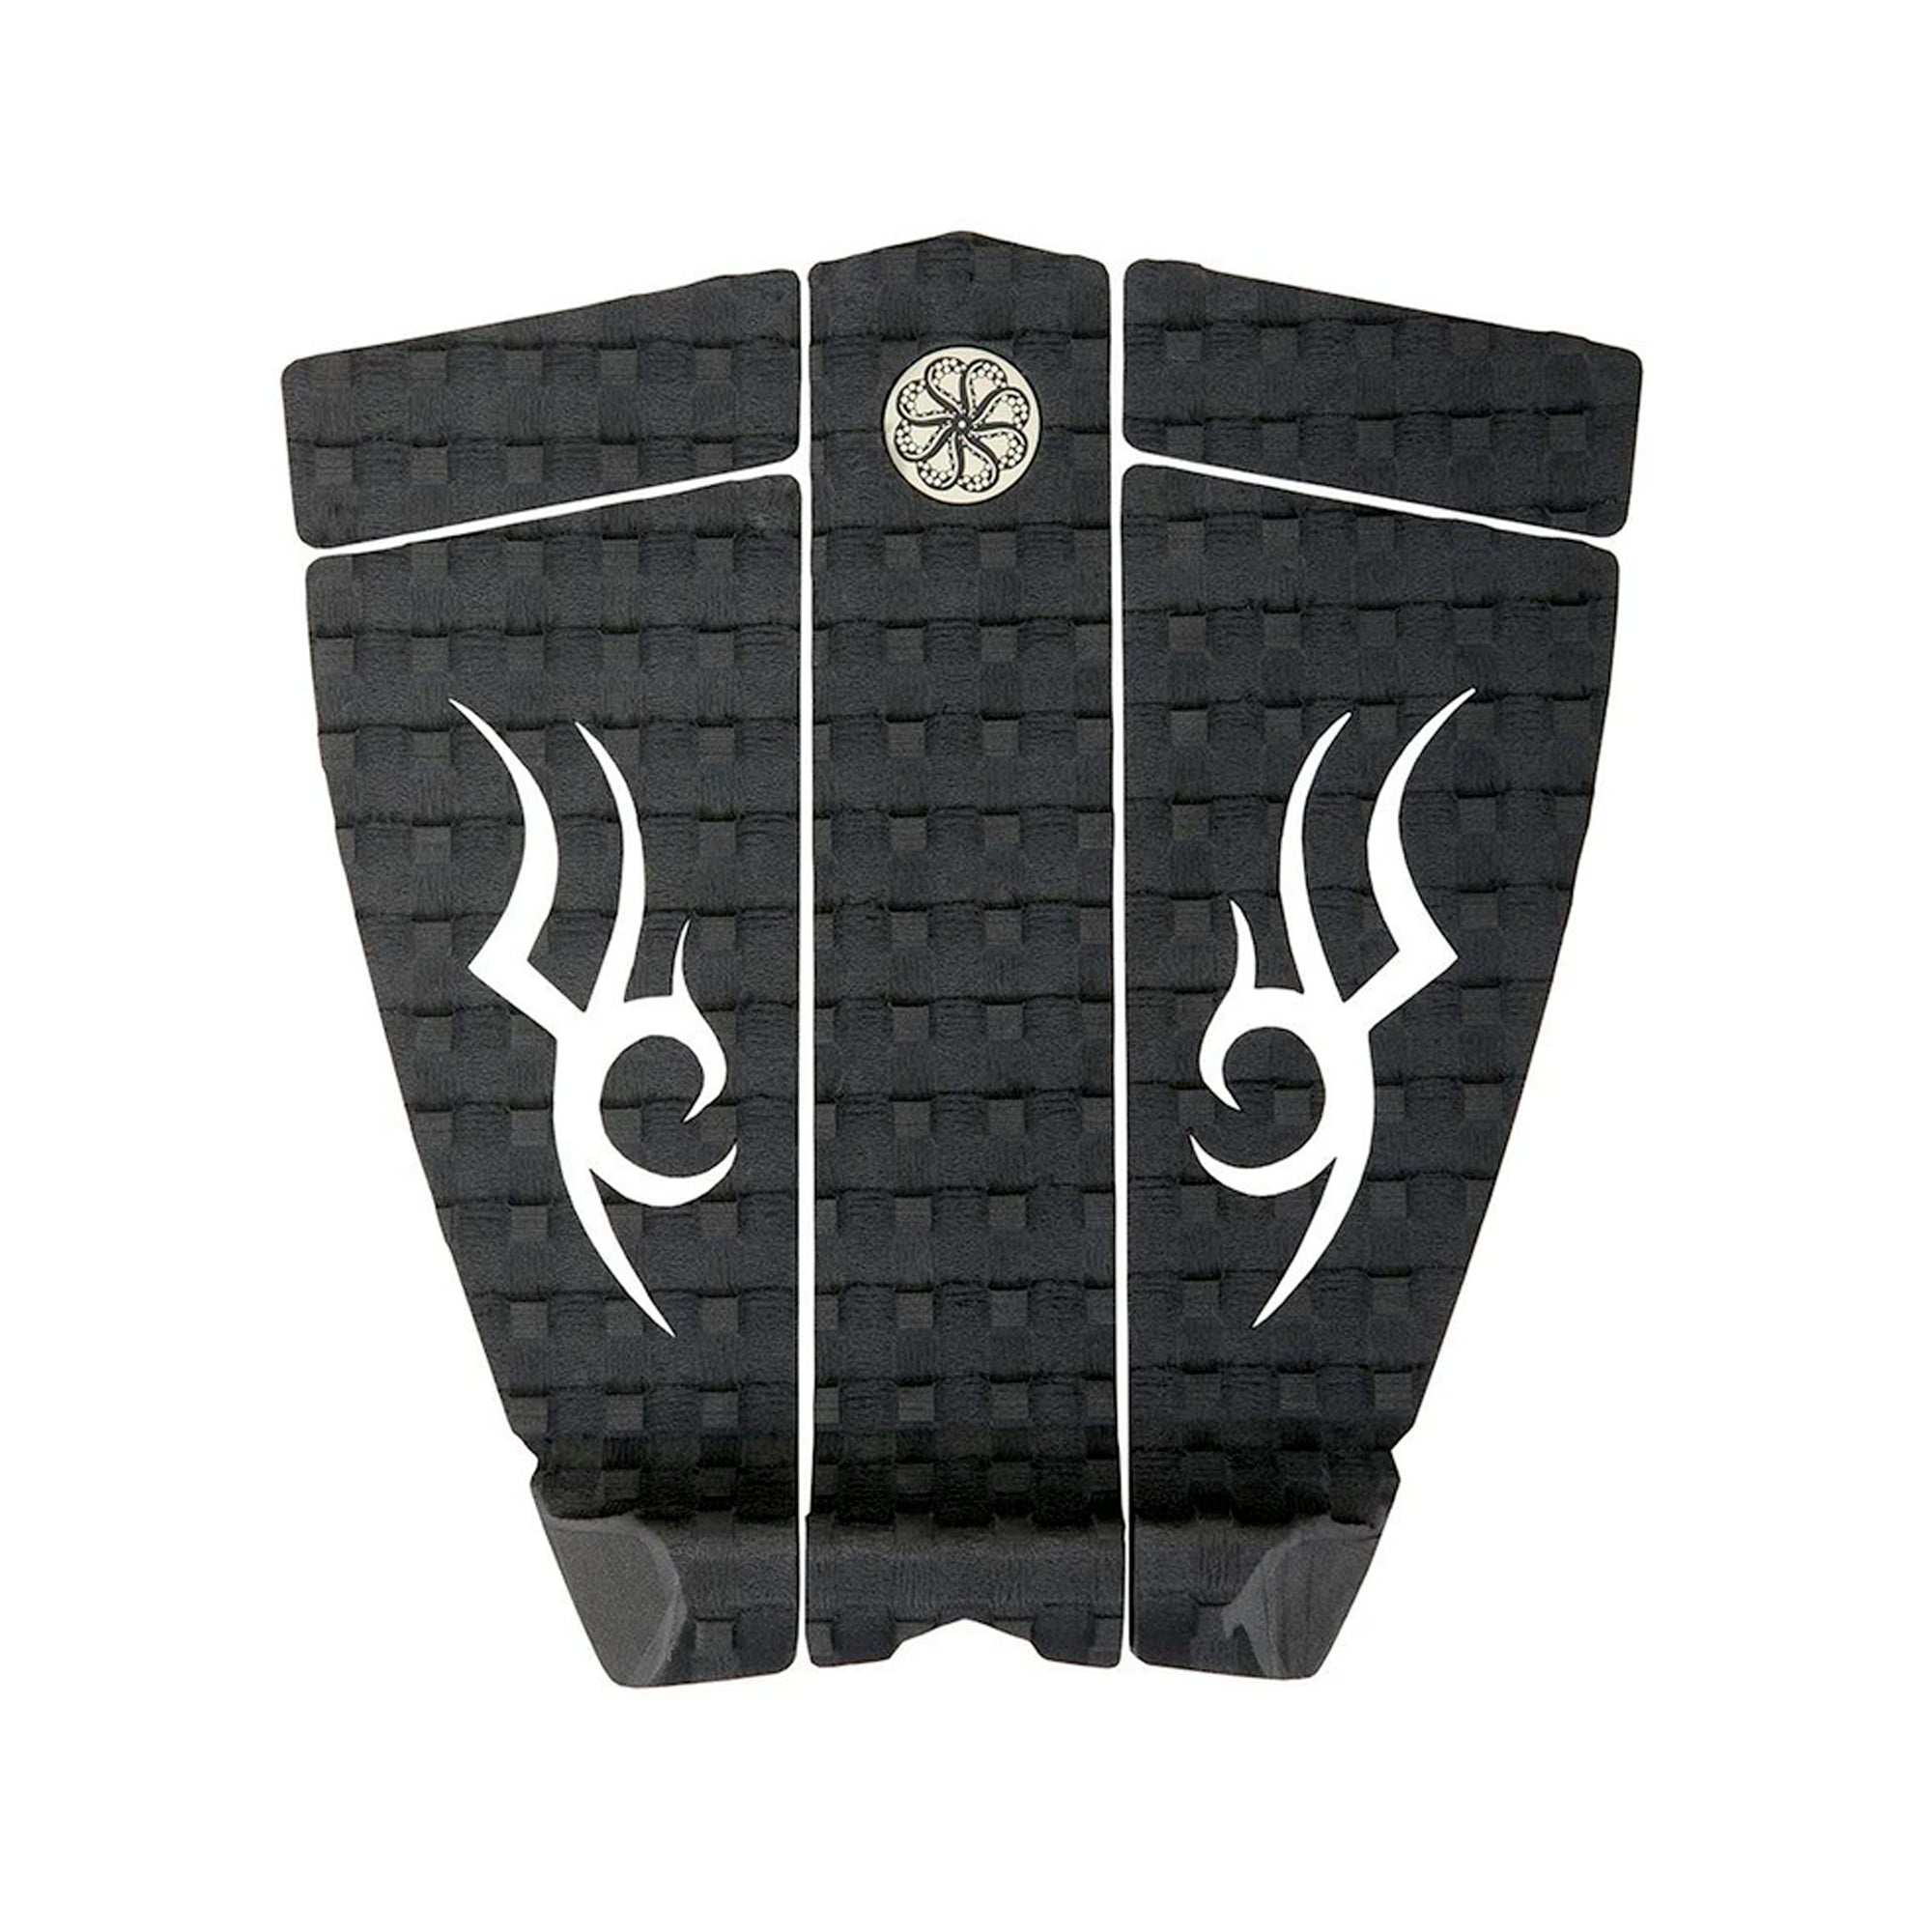 Octopus BioHaz Flat Traction Pad - Black